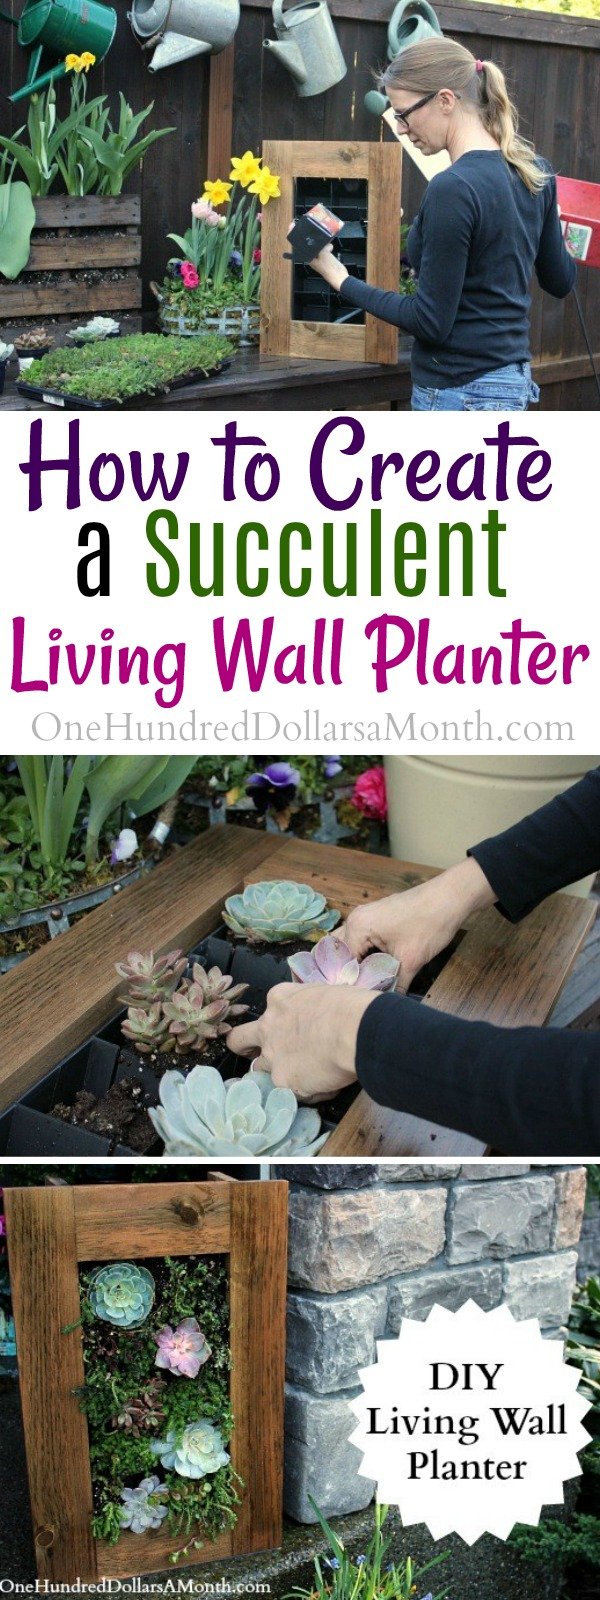 DIY Sedum and Succulent Living Wall Planter